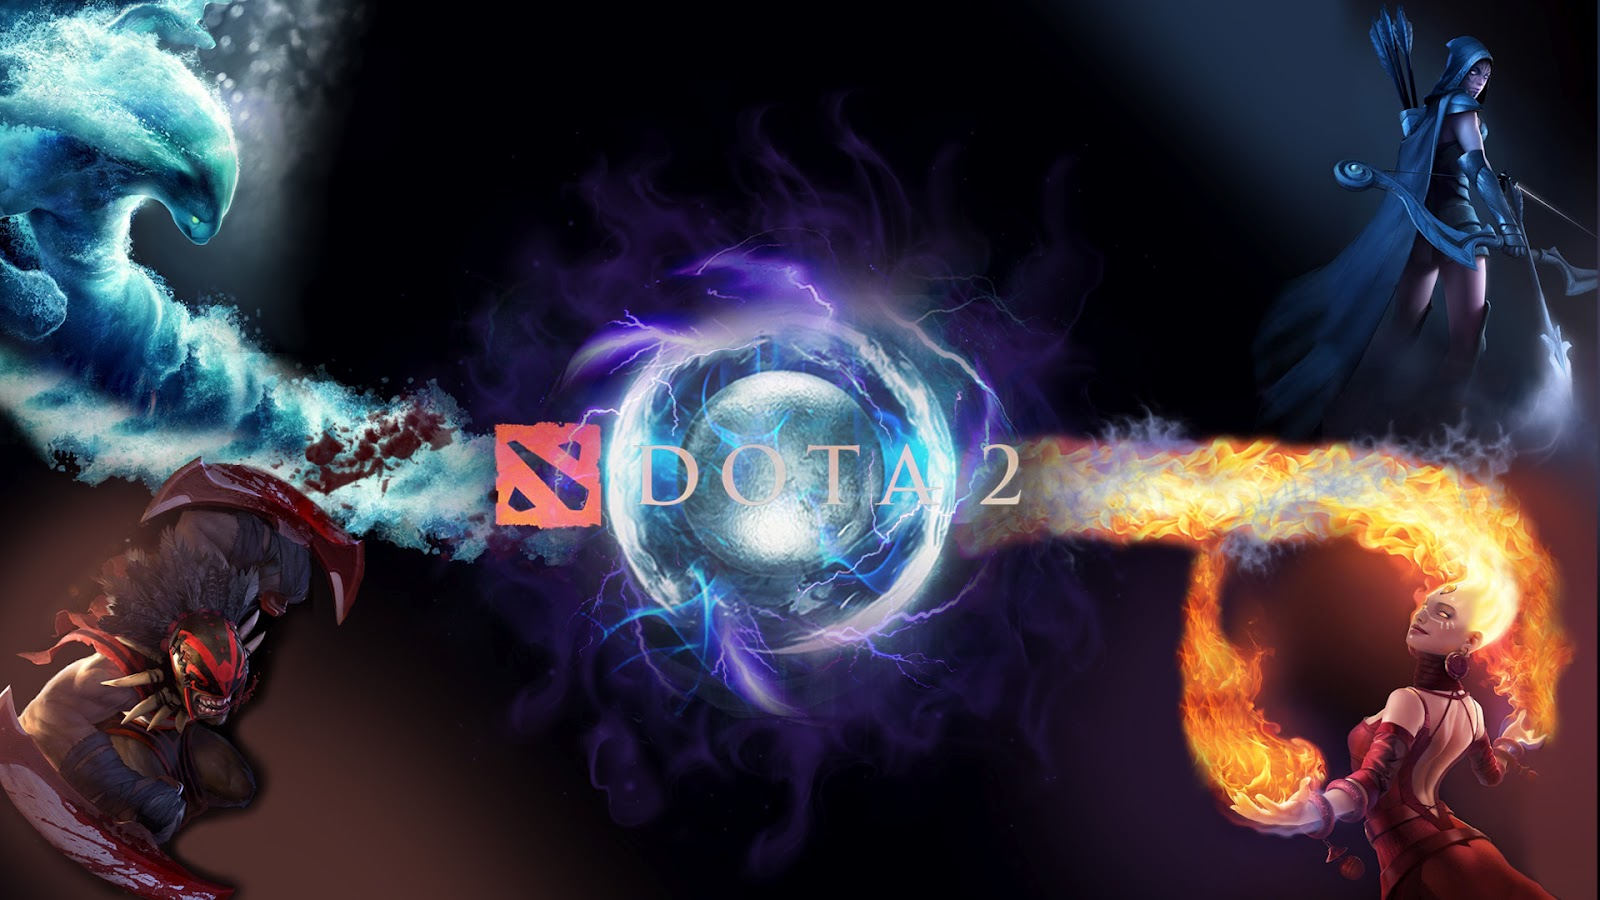 Dota 2 Iphone 4 Wallpaper